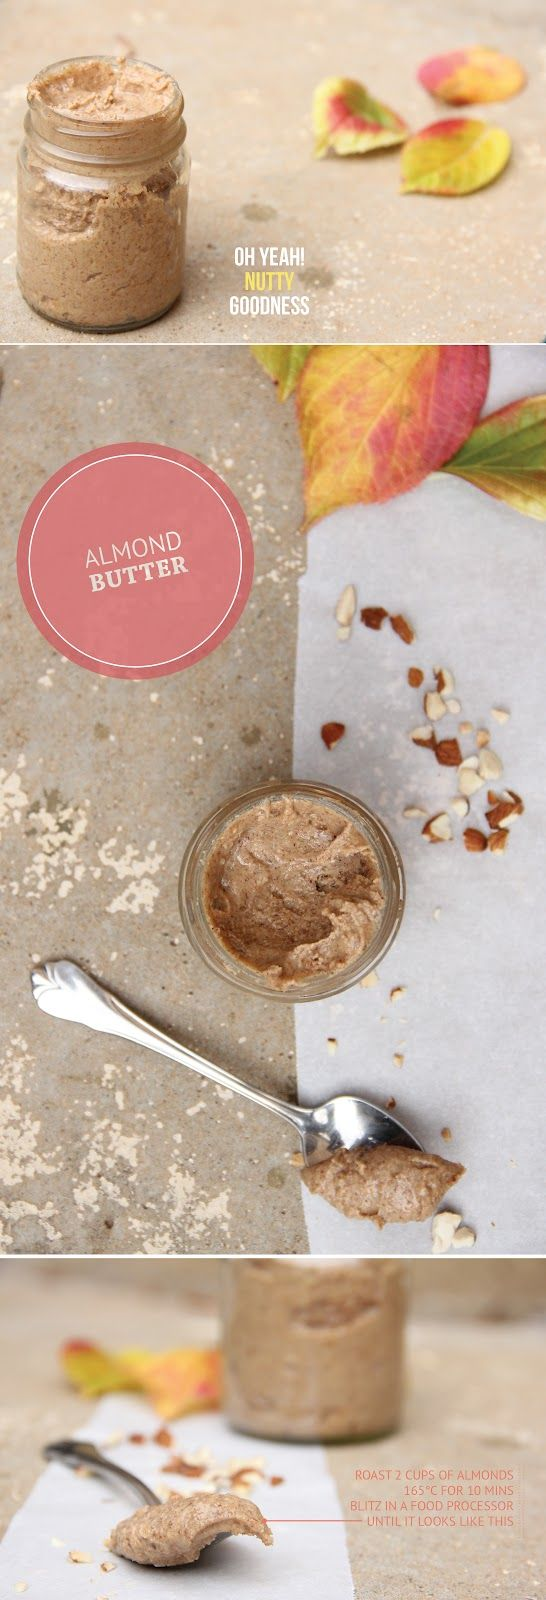 So amazing...ALMOND BUTTER